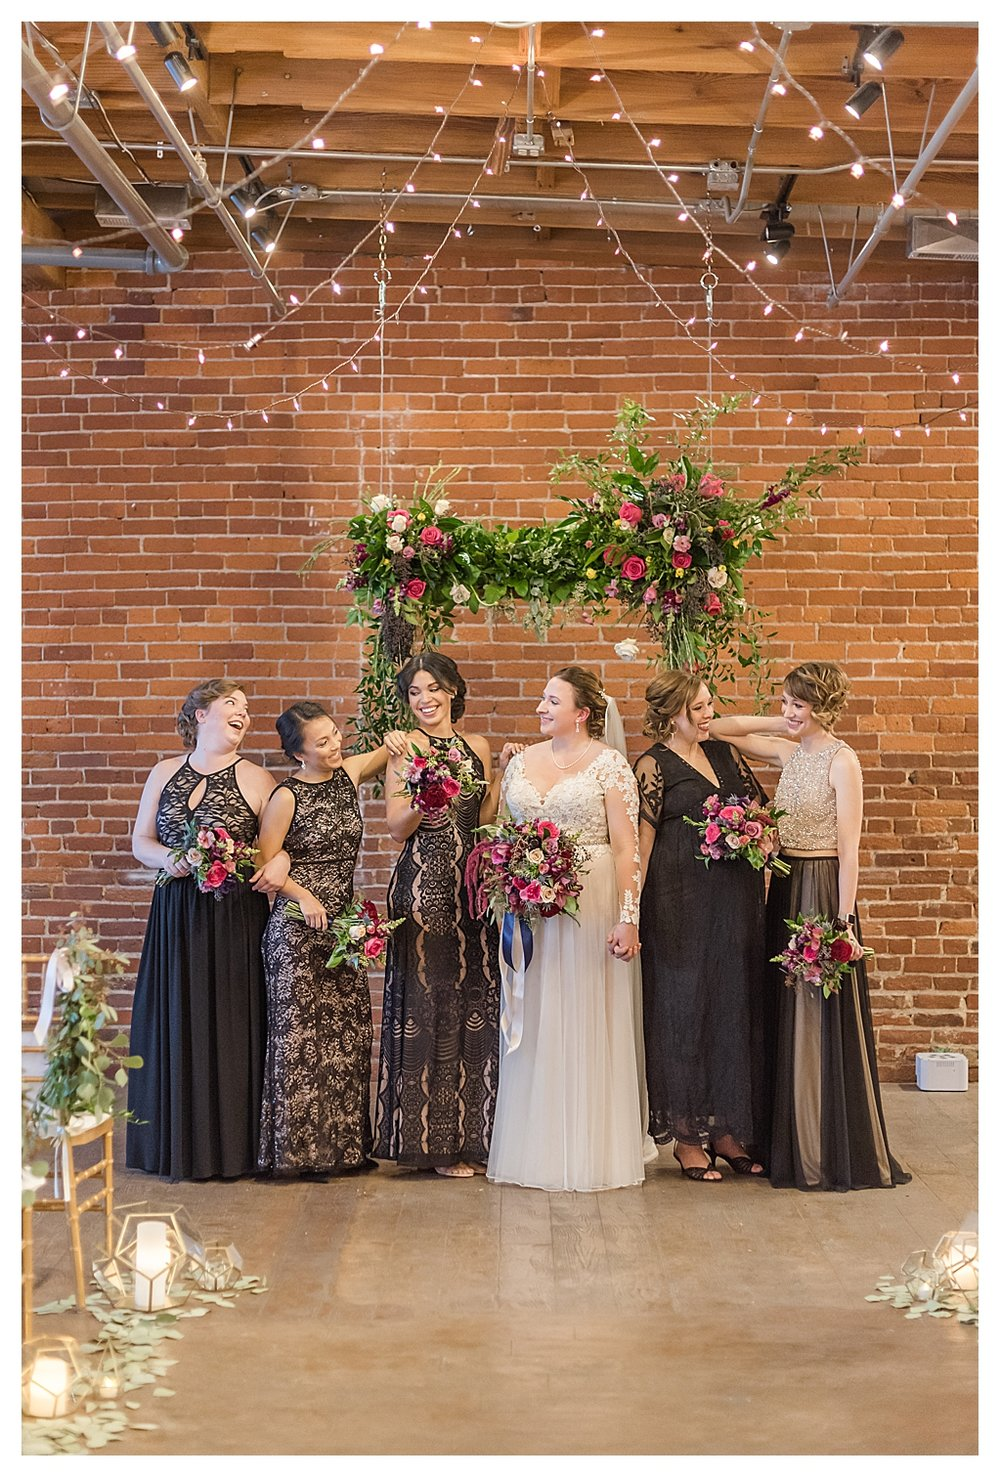 Winter Wedding at The Mill Top Indy Noblesville_1242.jpg